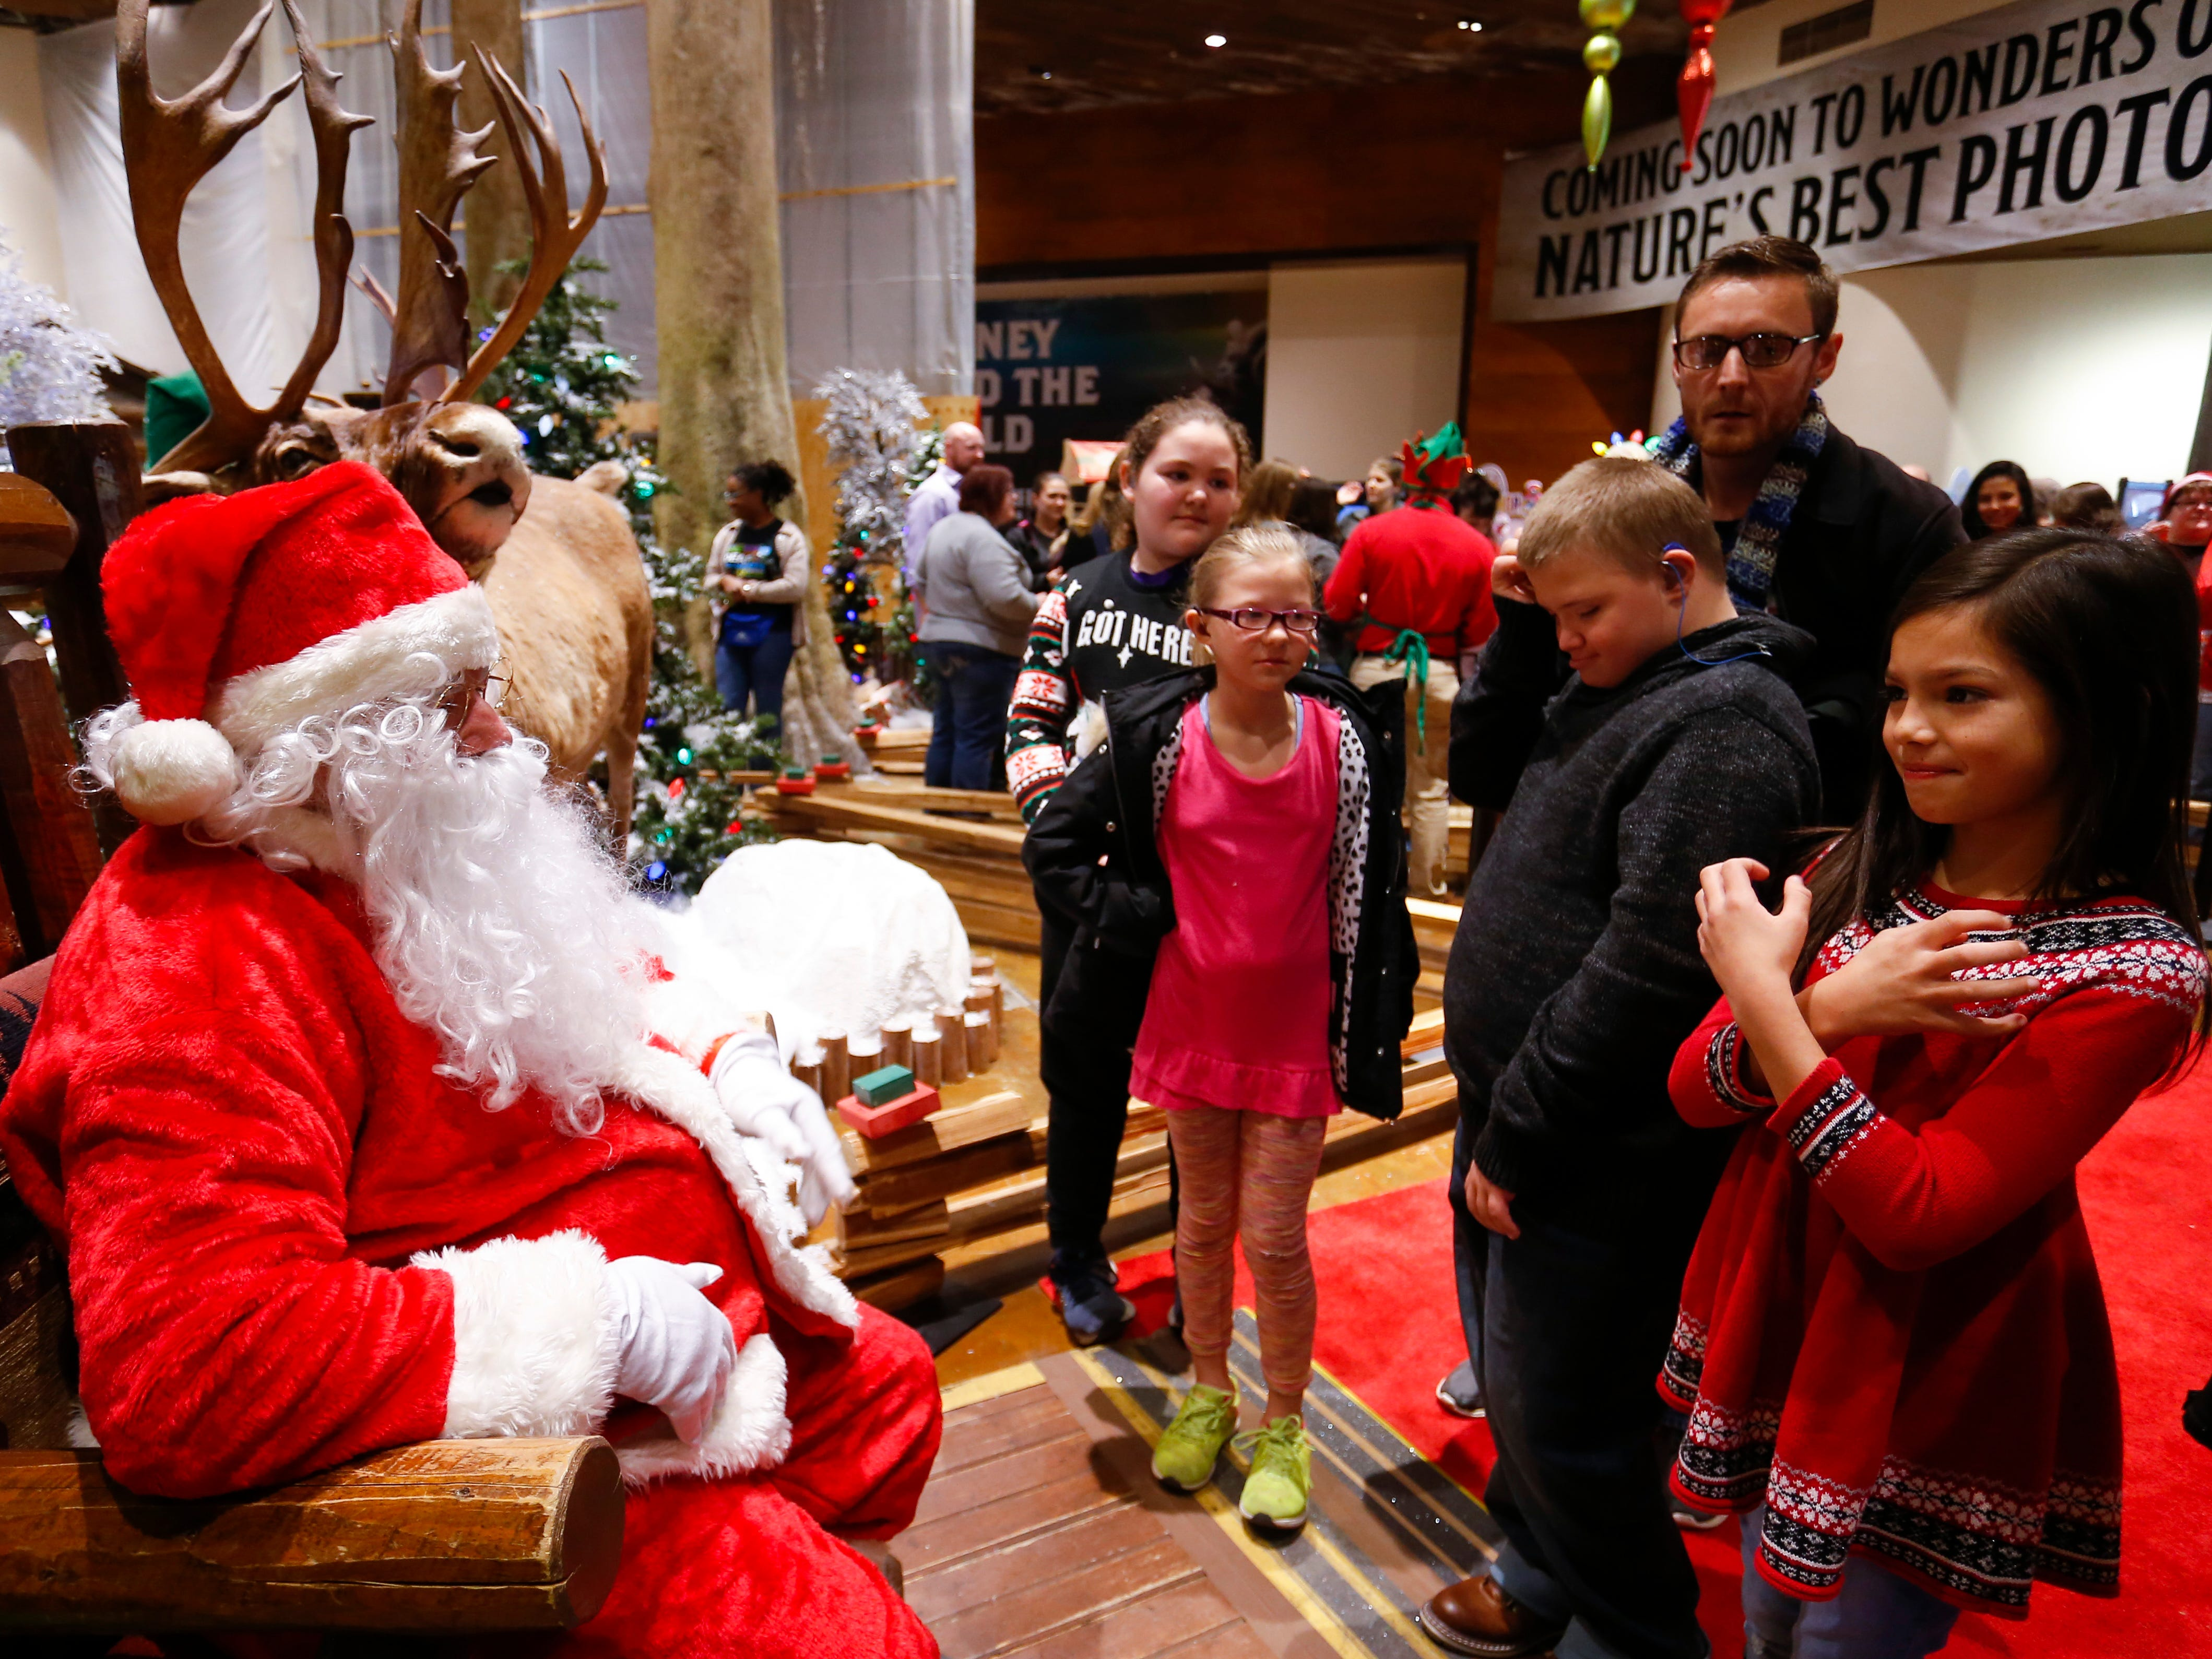 Nixa students (from right) Avery O'Brien, 8, Ayden Keating, 11, Ella McGarry, 10, and Samantha Surridge, 10, communicate their Christmas wishes in sign language to Santa Claus at Bass Pro Shops on Friday, December 7, 2018. More than 100 deaf and hard of hearing area students visited with the American Sign Language fluent Santa.